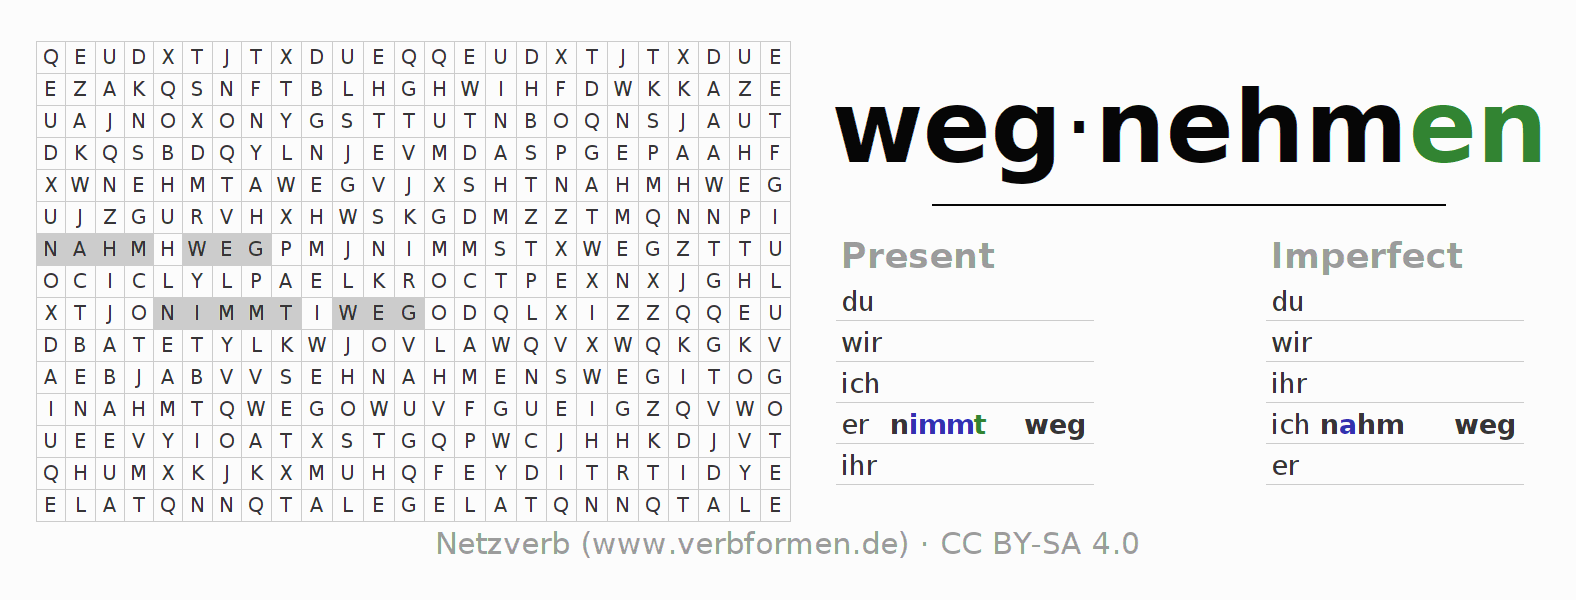 Word search puzzle for the conjugation of the verb wegnehmen